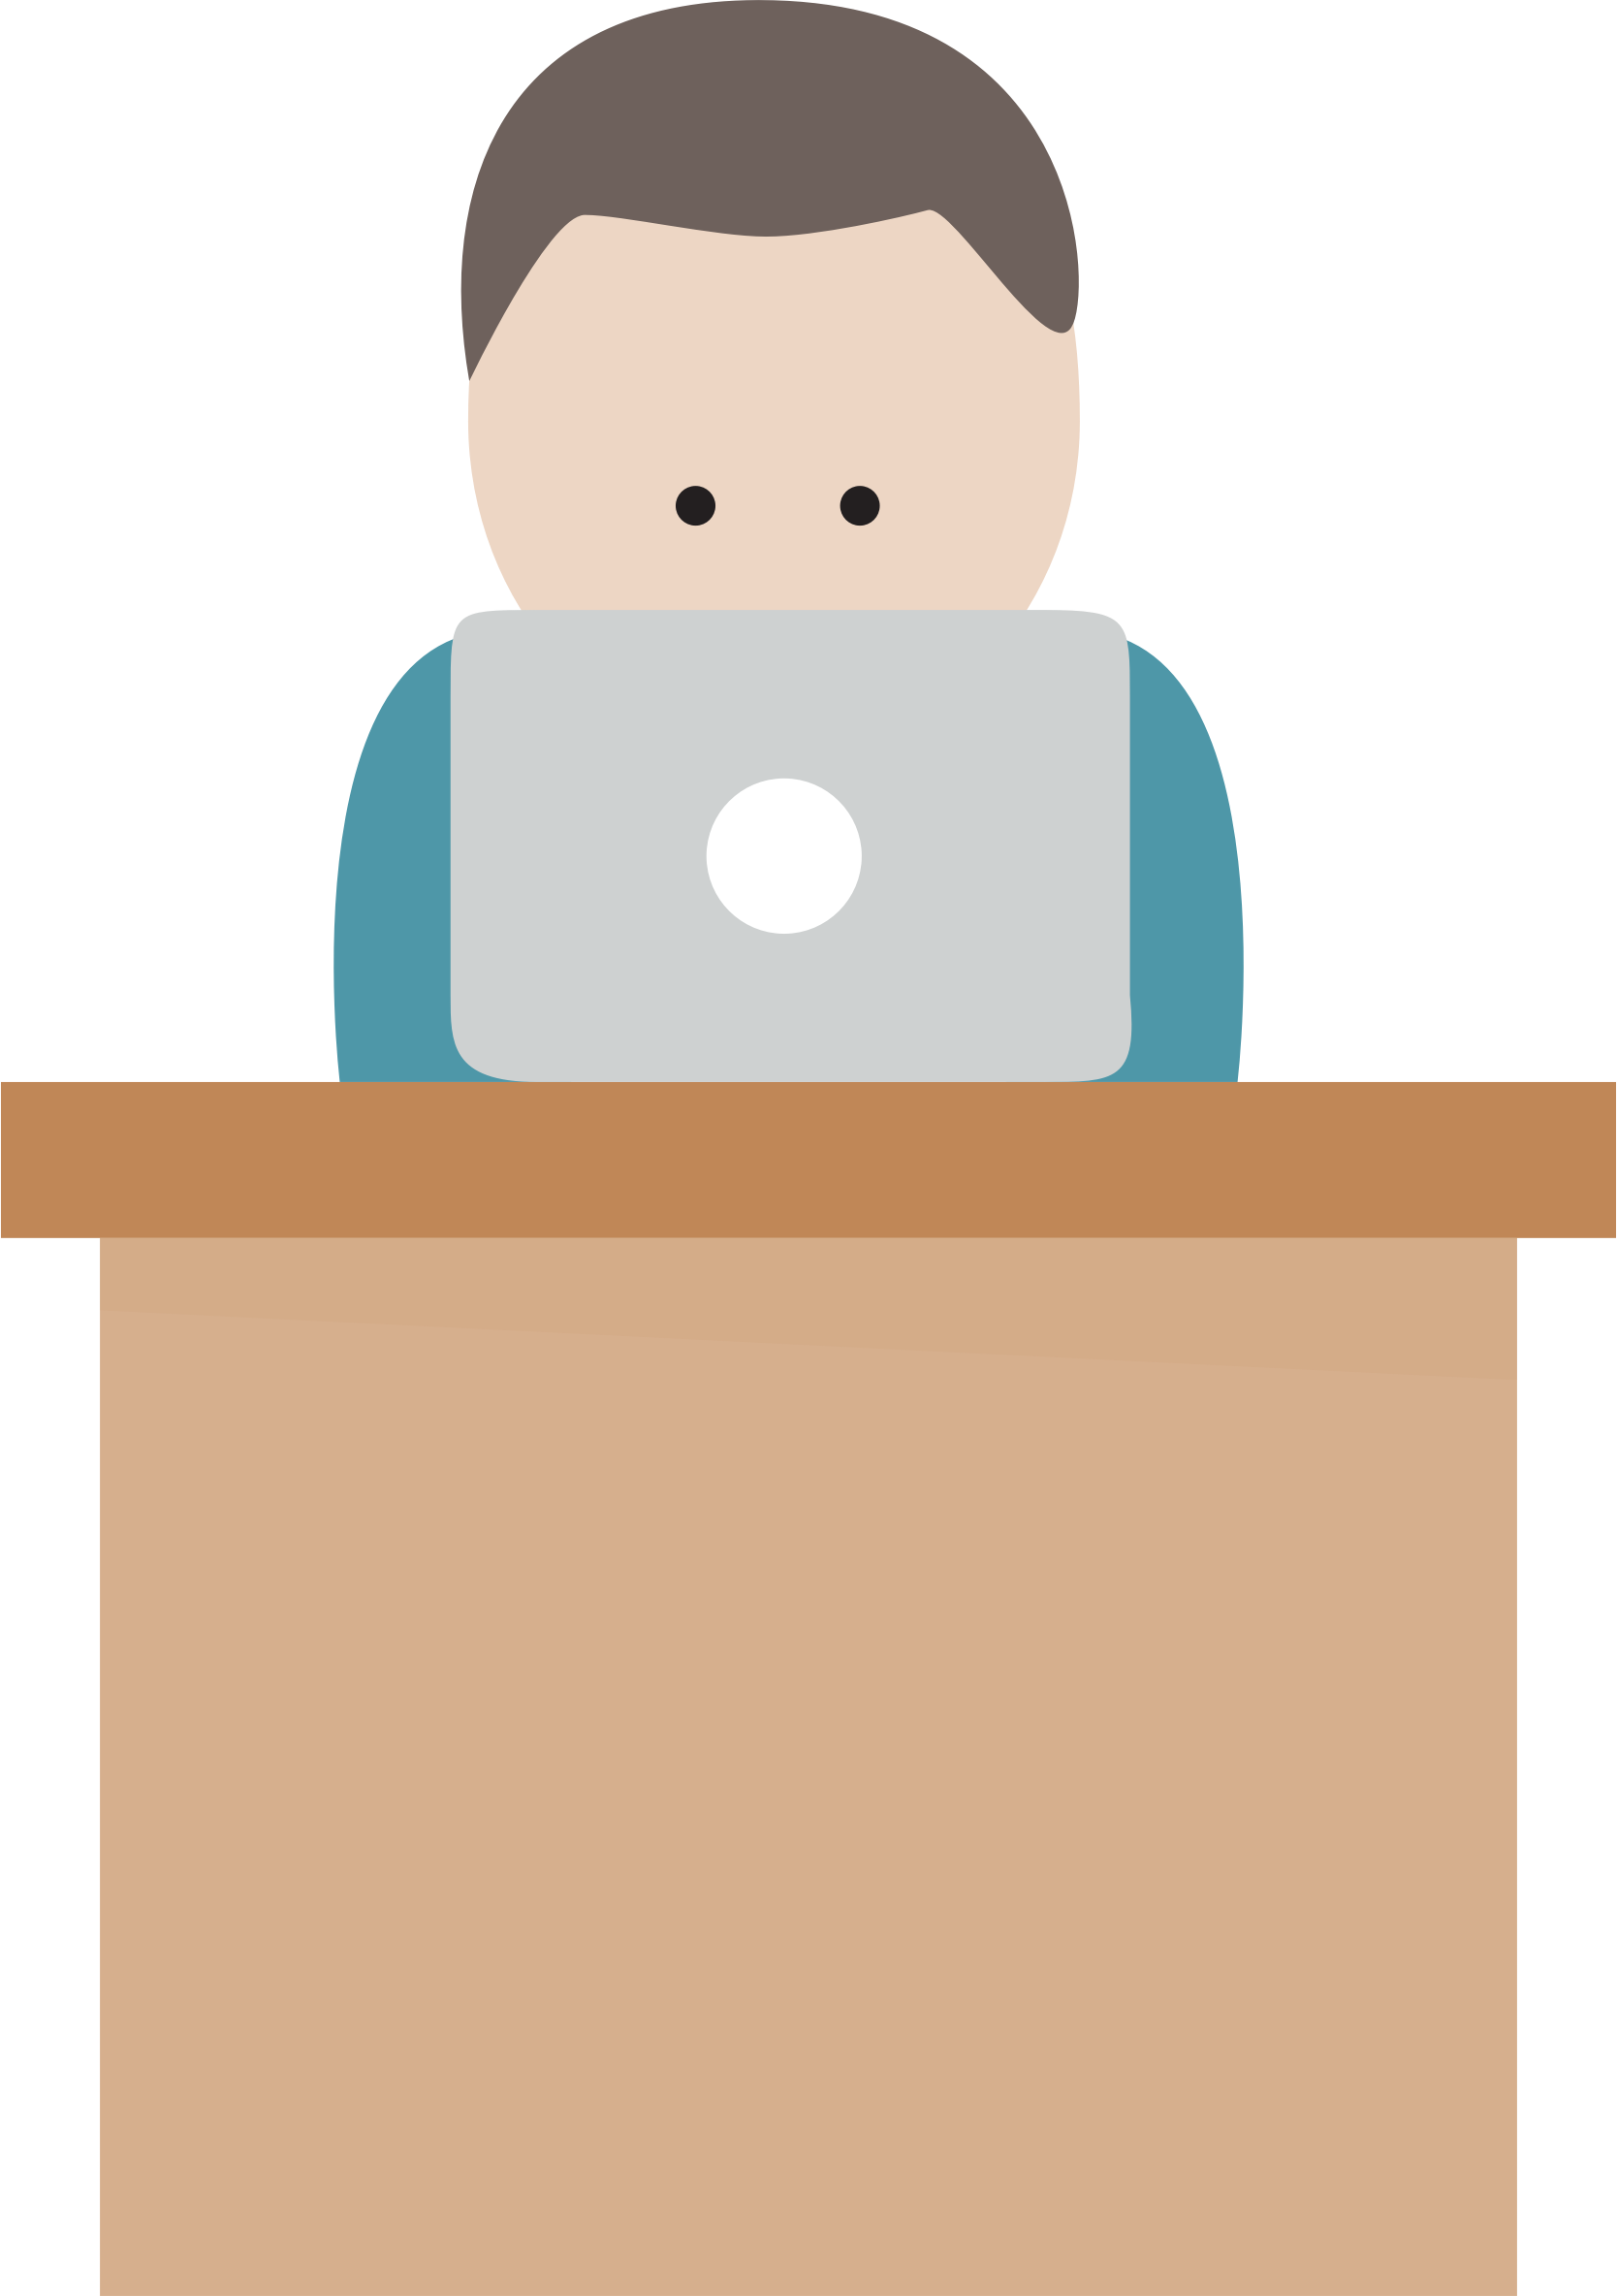 Desk clipart boy. With computer at big